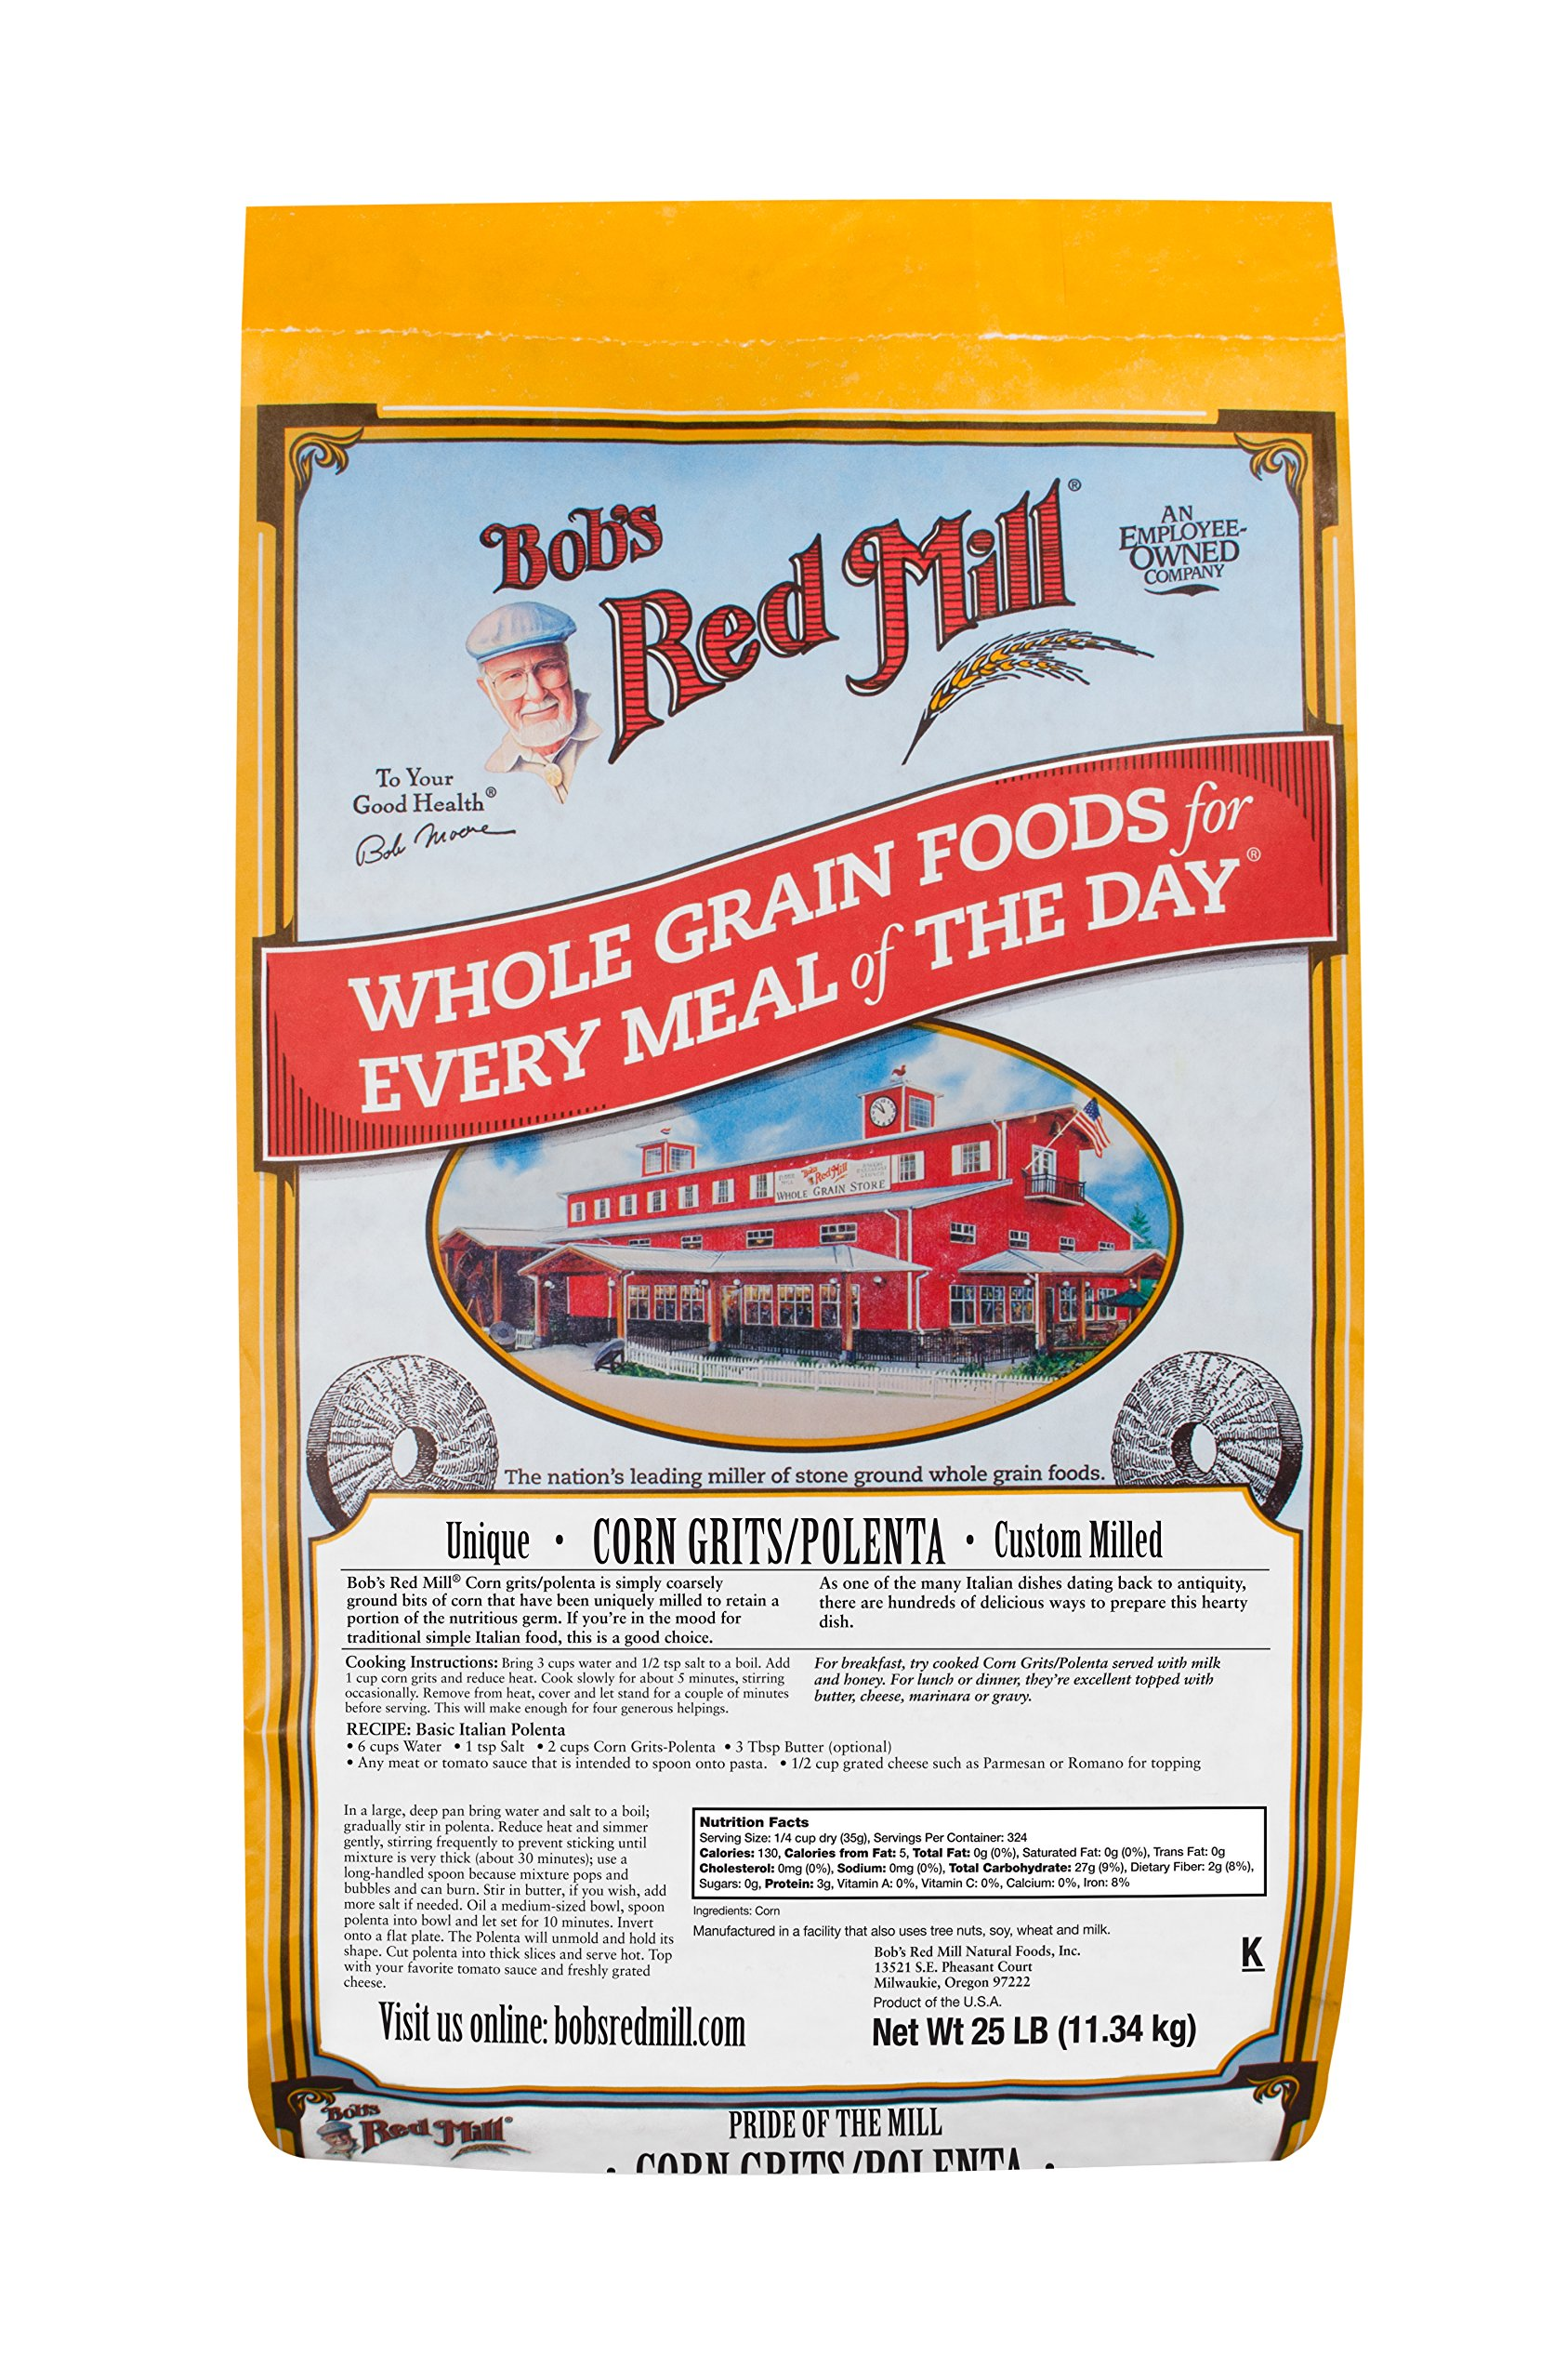 Bob's Red Mill Corn Grits/Polenta, 25 Pound by Bob's Red Mill